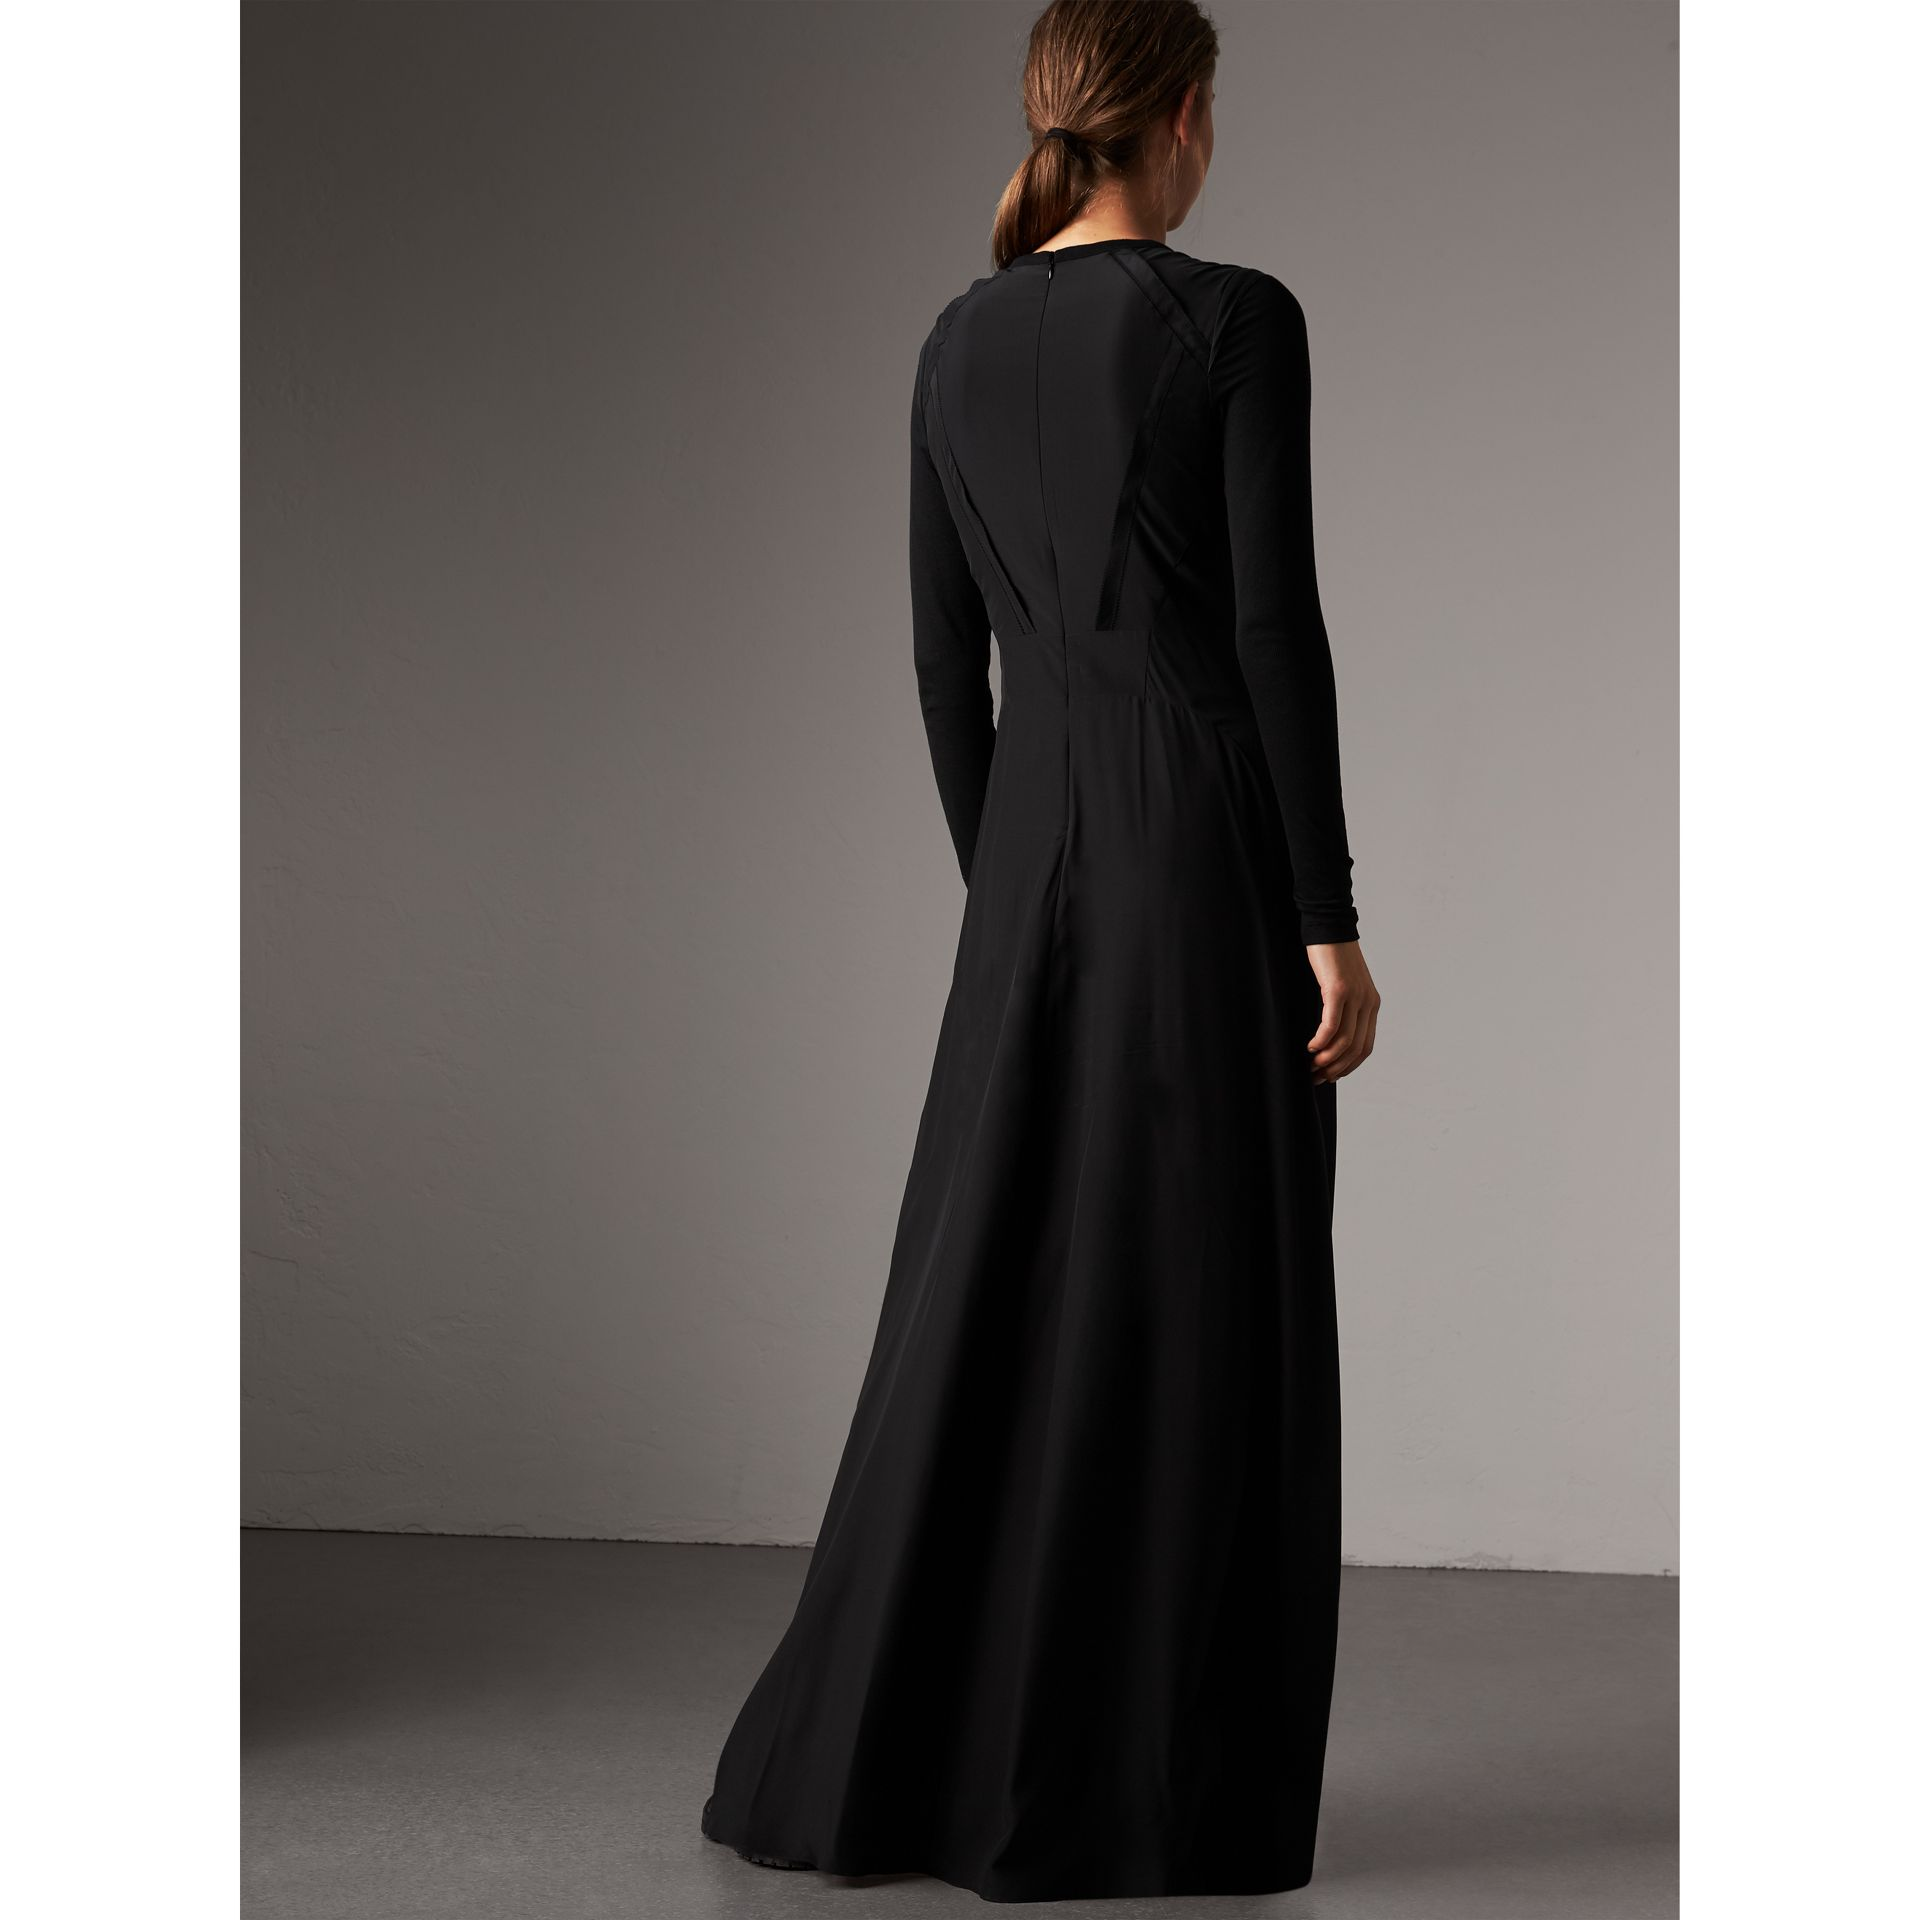 Silk Floor-length Gathered Dress in Black - Women | Burberry - gallery image 2